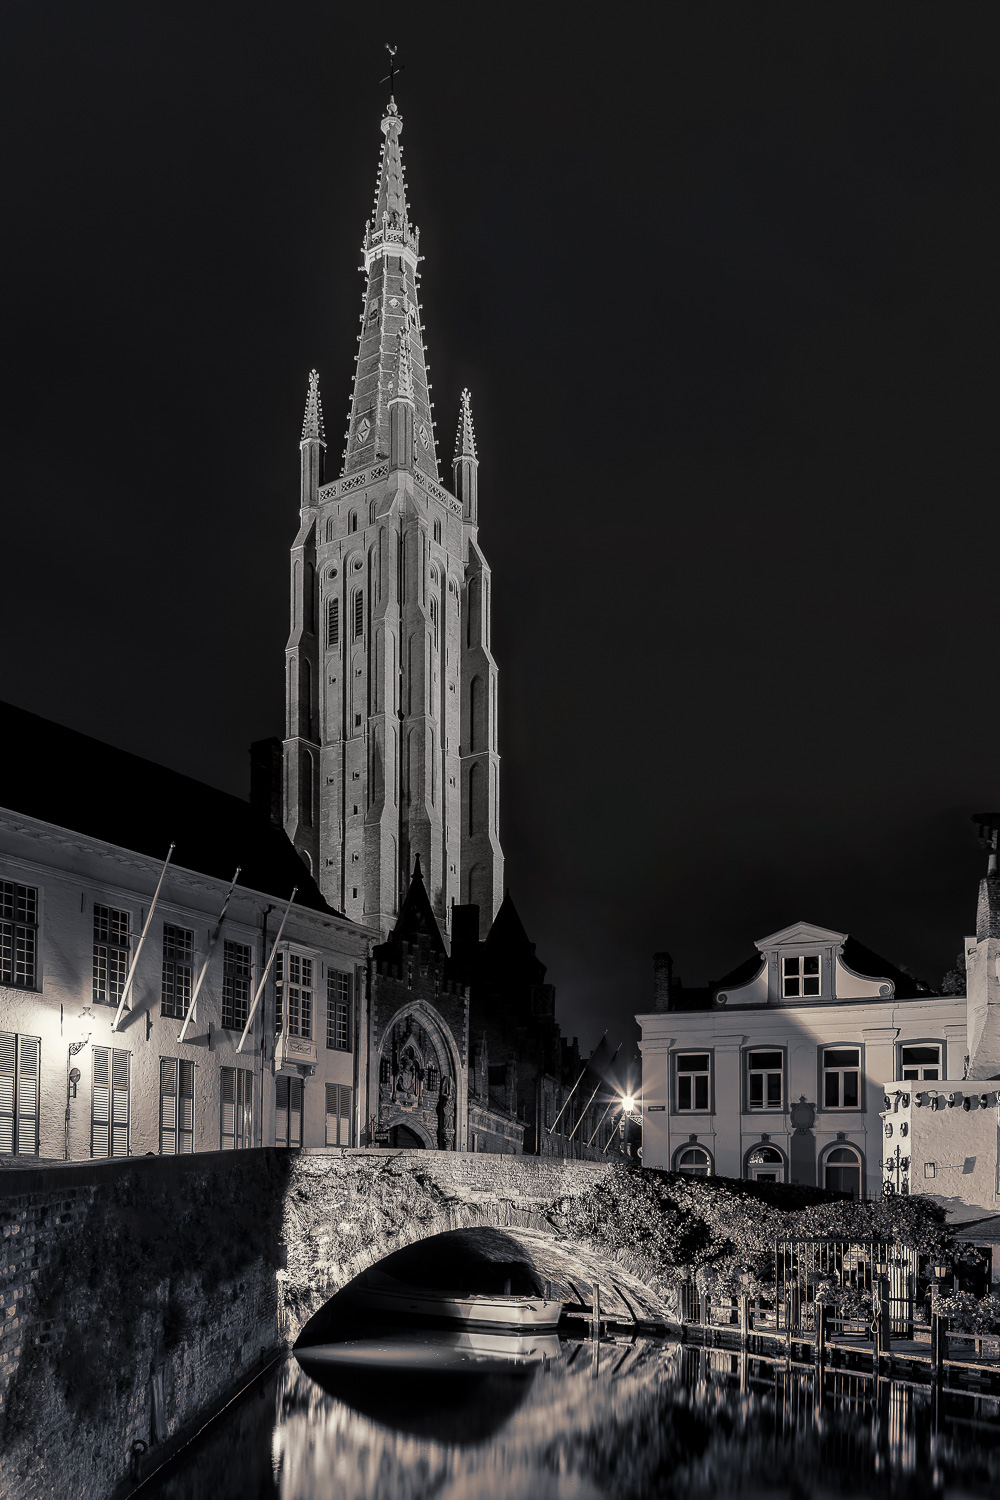 A peaceful scene depicting the    Church Of Our Lady   , under a dark night sky, in the city of    Bruges    (i.e., Brugge)    Belgium   .